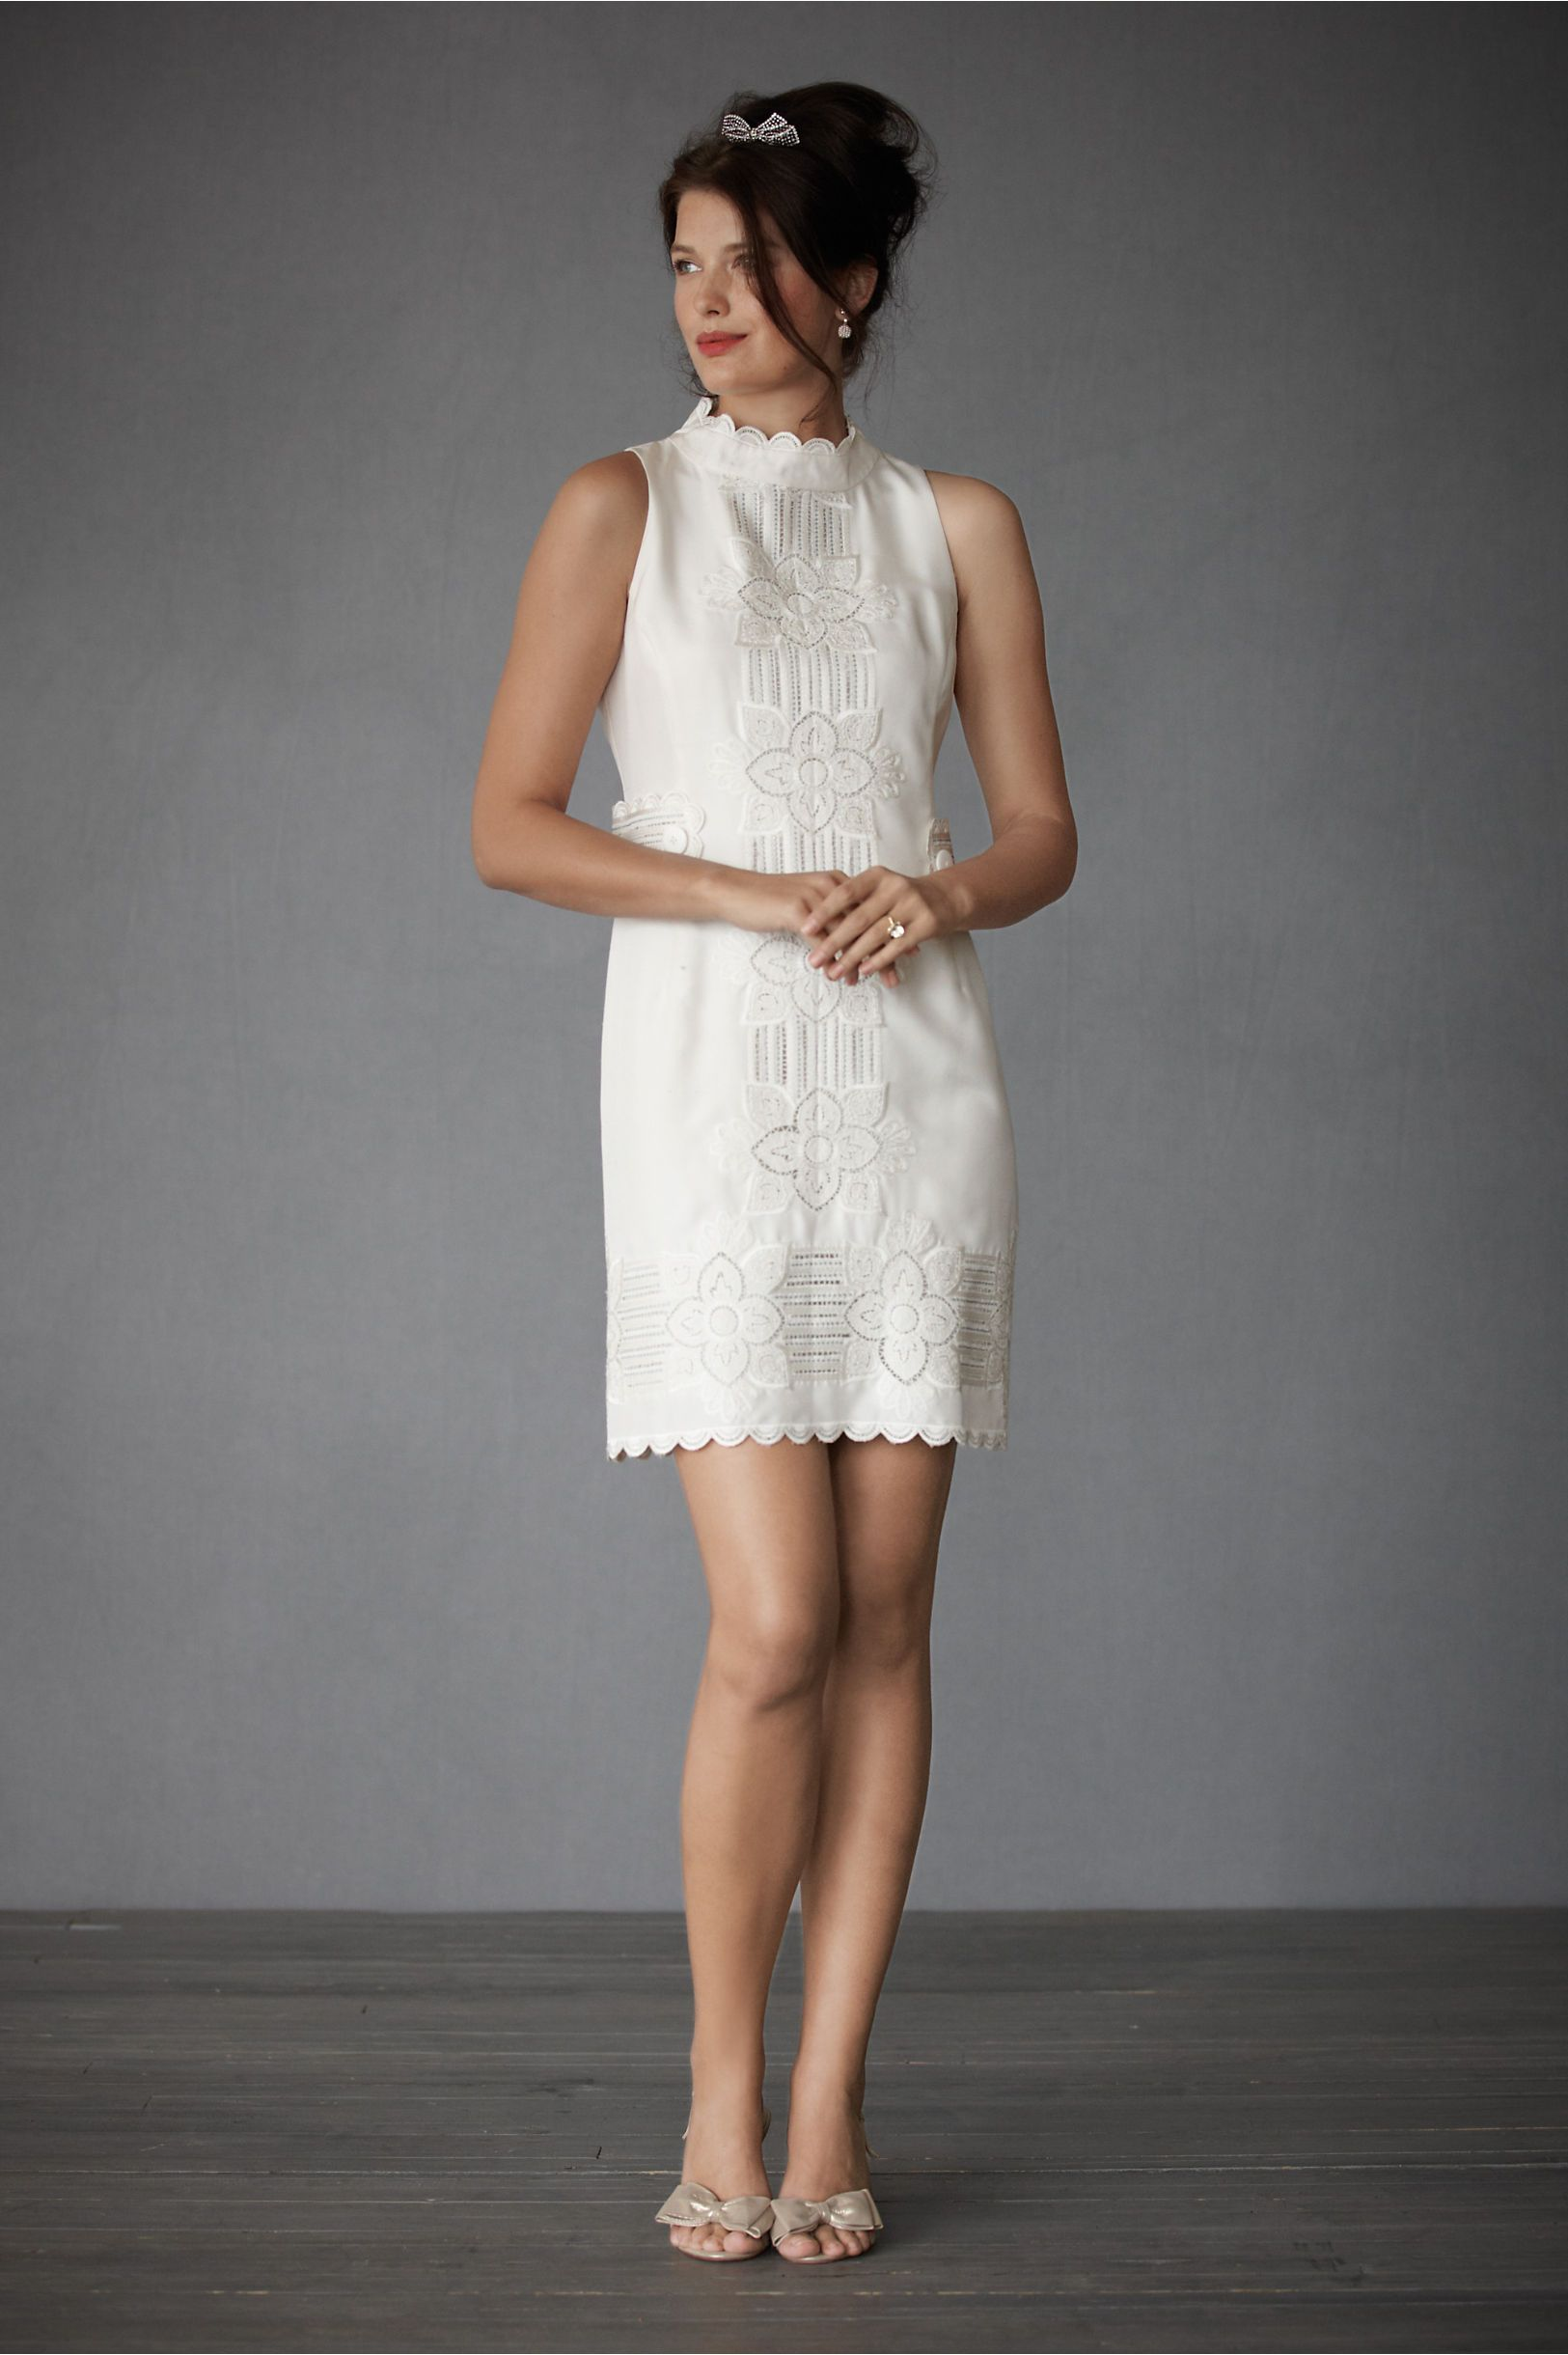 Pin by DI D on .indossare | Dresses, Rehearsal dinner